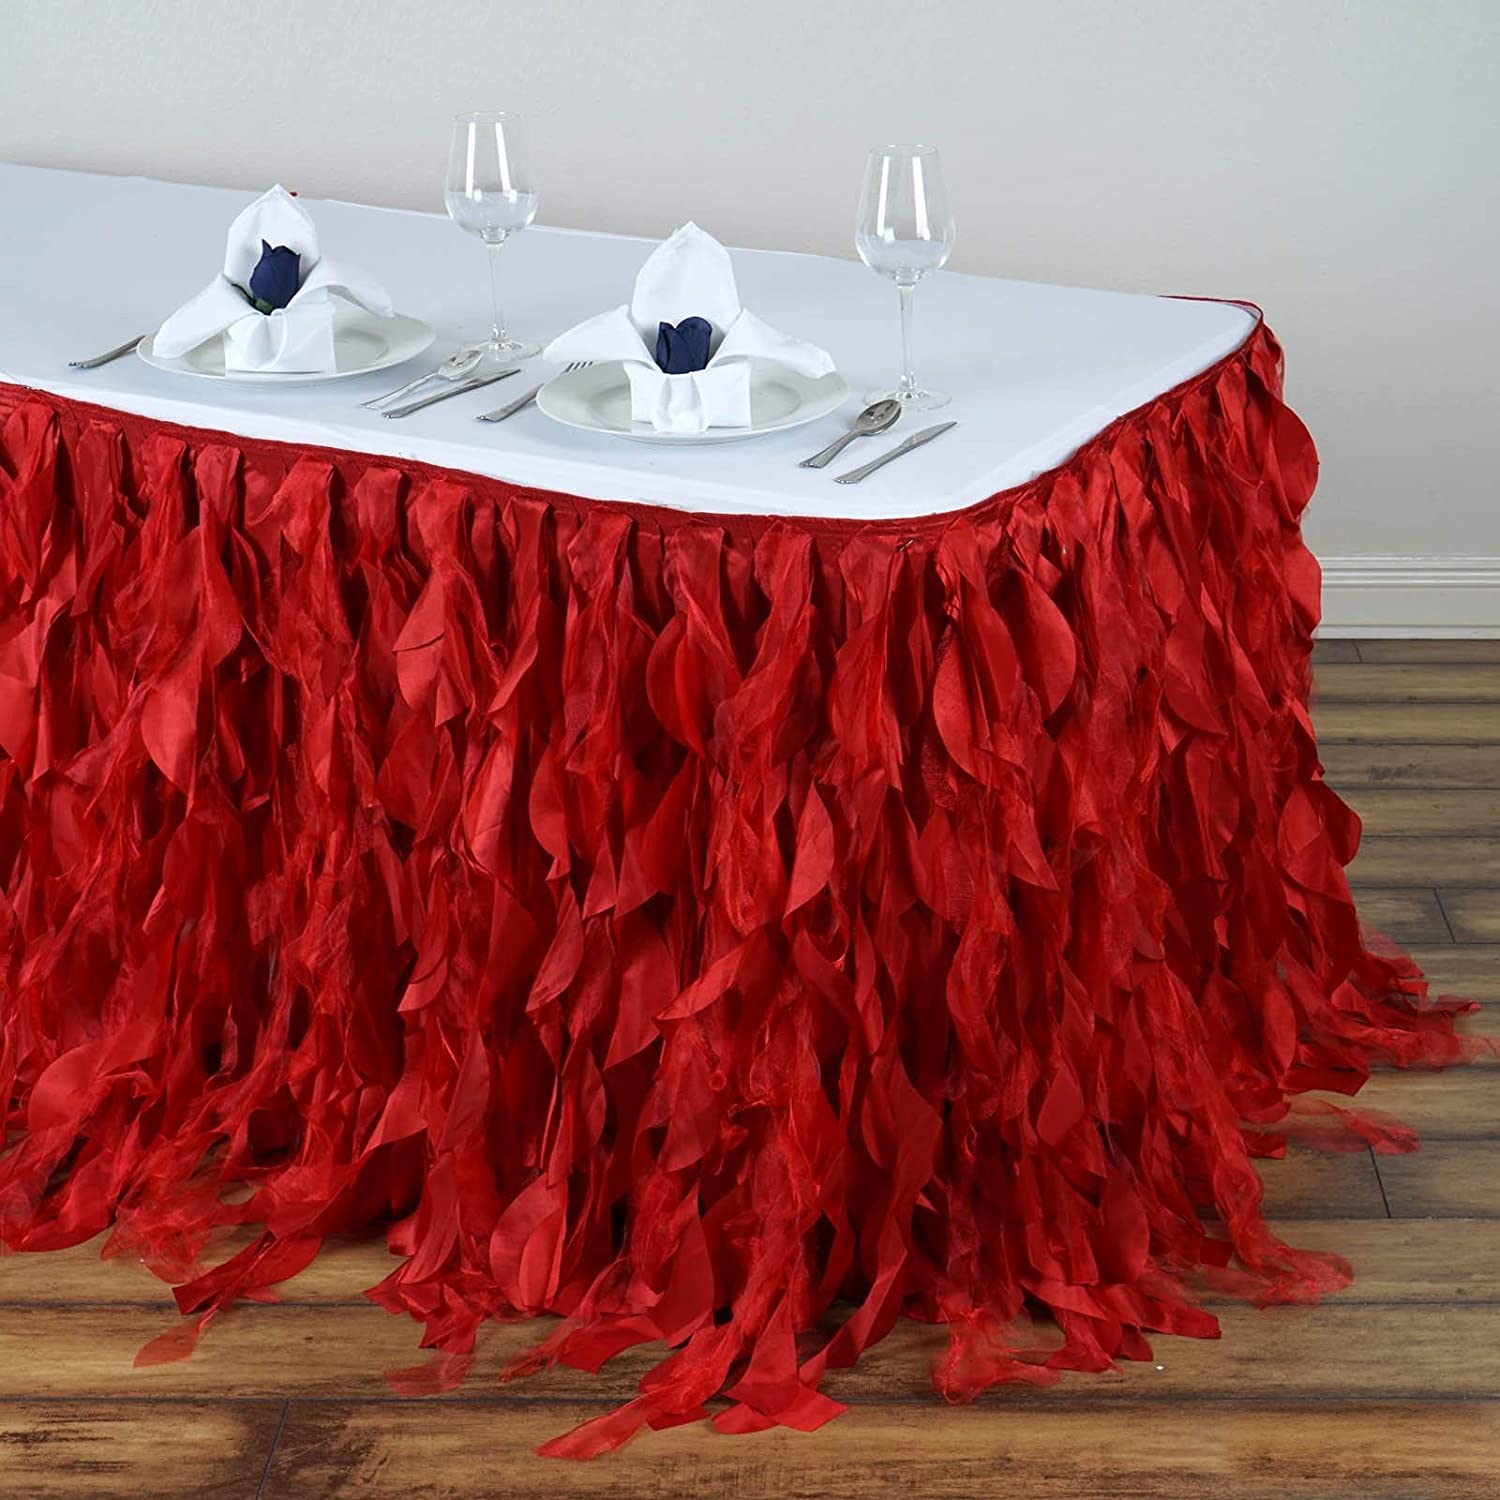 Efavormart 17ft Enchanting Curly Willow Table Max 73% OFF for Skirt Max 62% OFF Taffeta